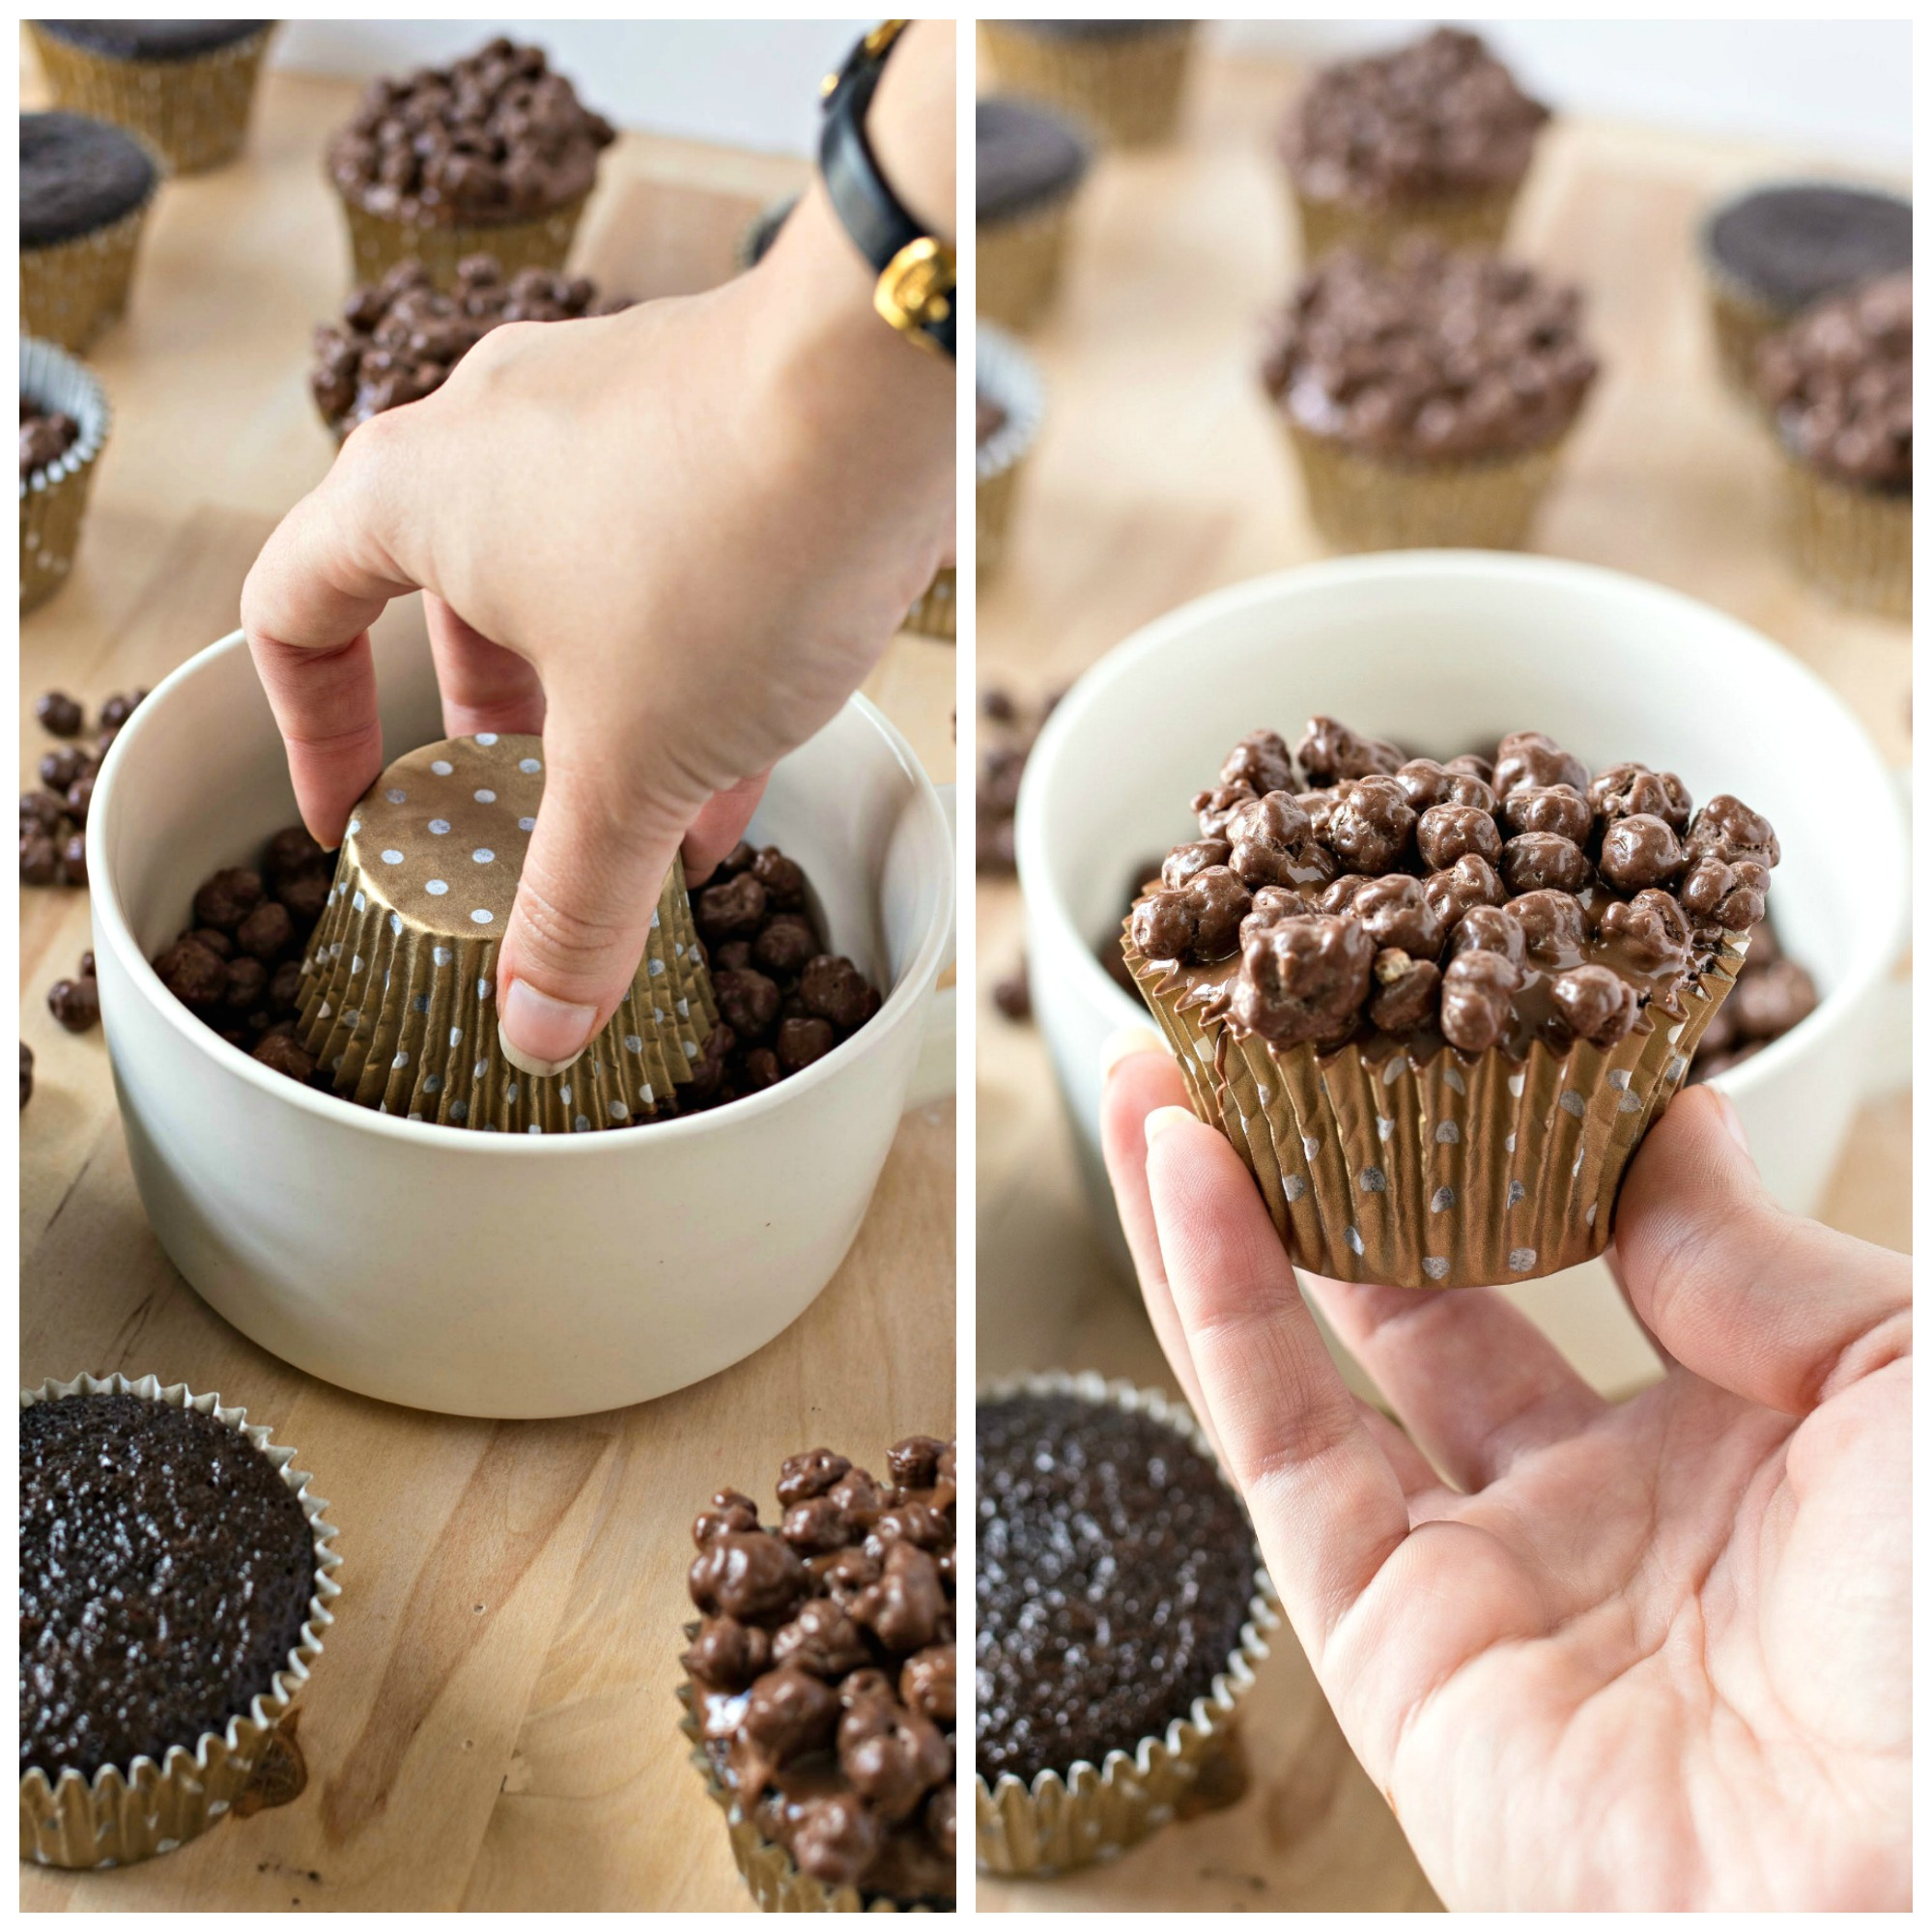 Dipping the cupcake into a bowl of buncha crunch